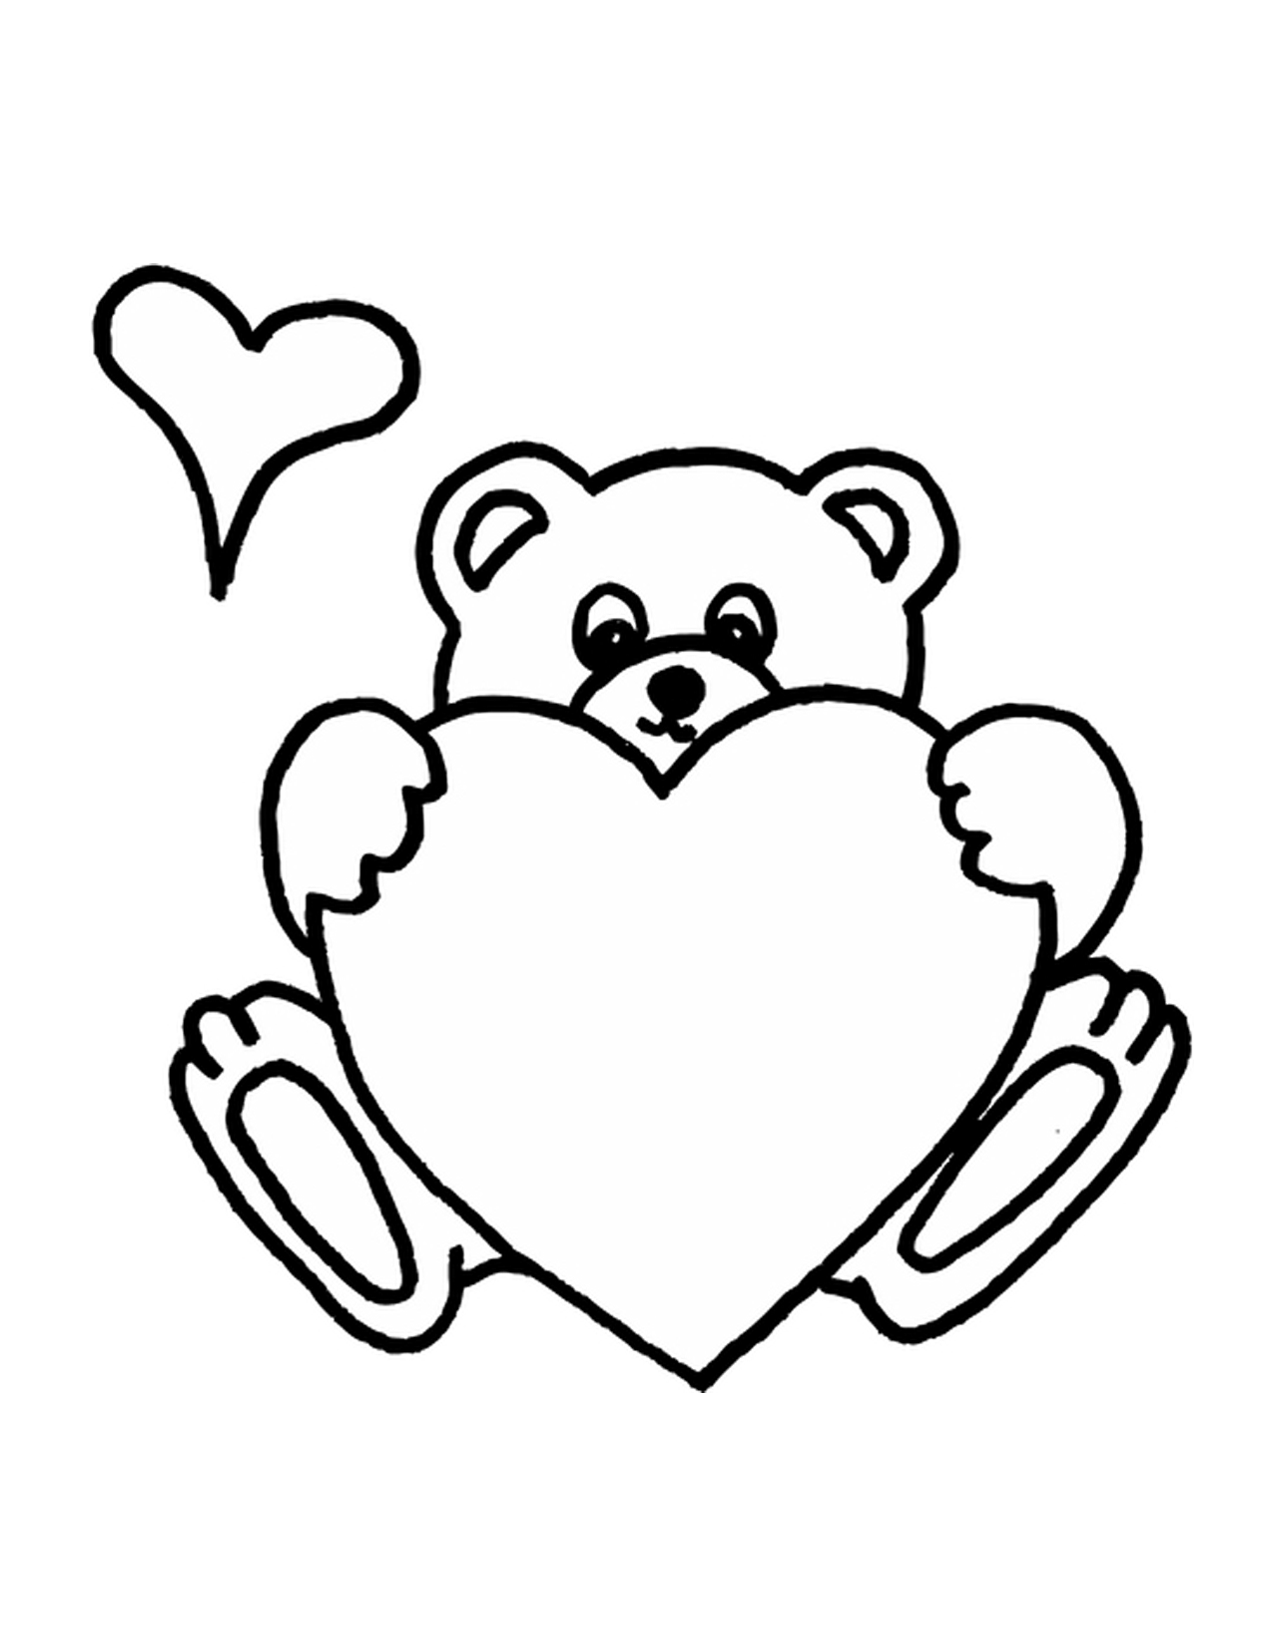 Cute Teddy Bear Coloring Pages | coloring page teddy bear teddy bear ...